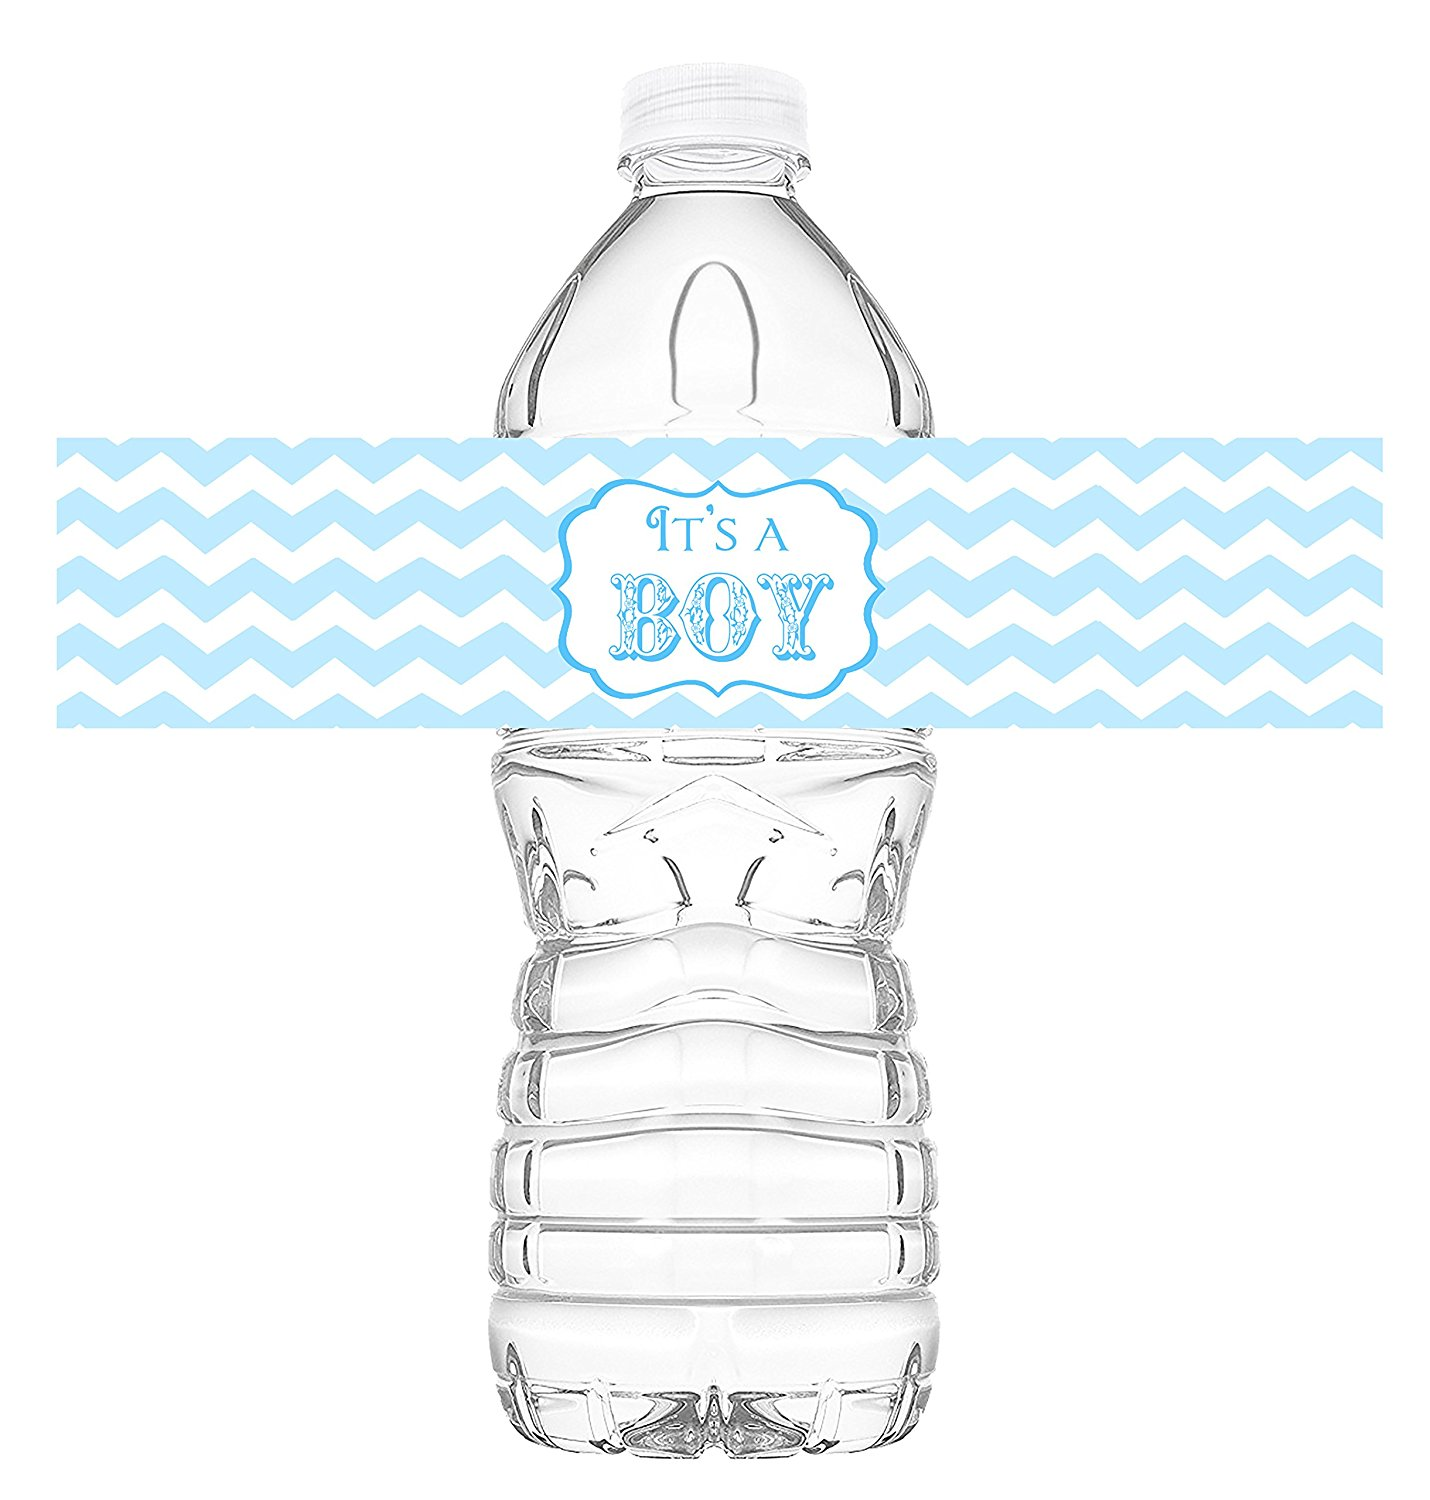 Neat Usa B072qxq6ts Its A Boy Cake Per Its A Boy Candy Its A Boy Bottle Wraps 20 Baby Shower Water Bottle Labels Baby Shower Decorations Made inspiration Its A Boy